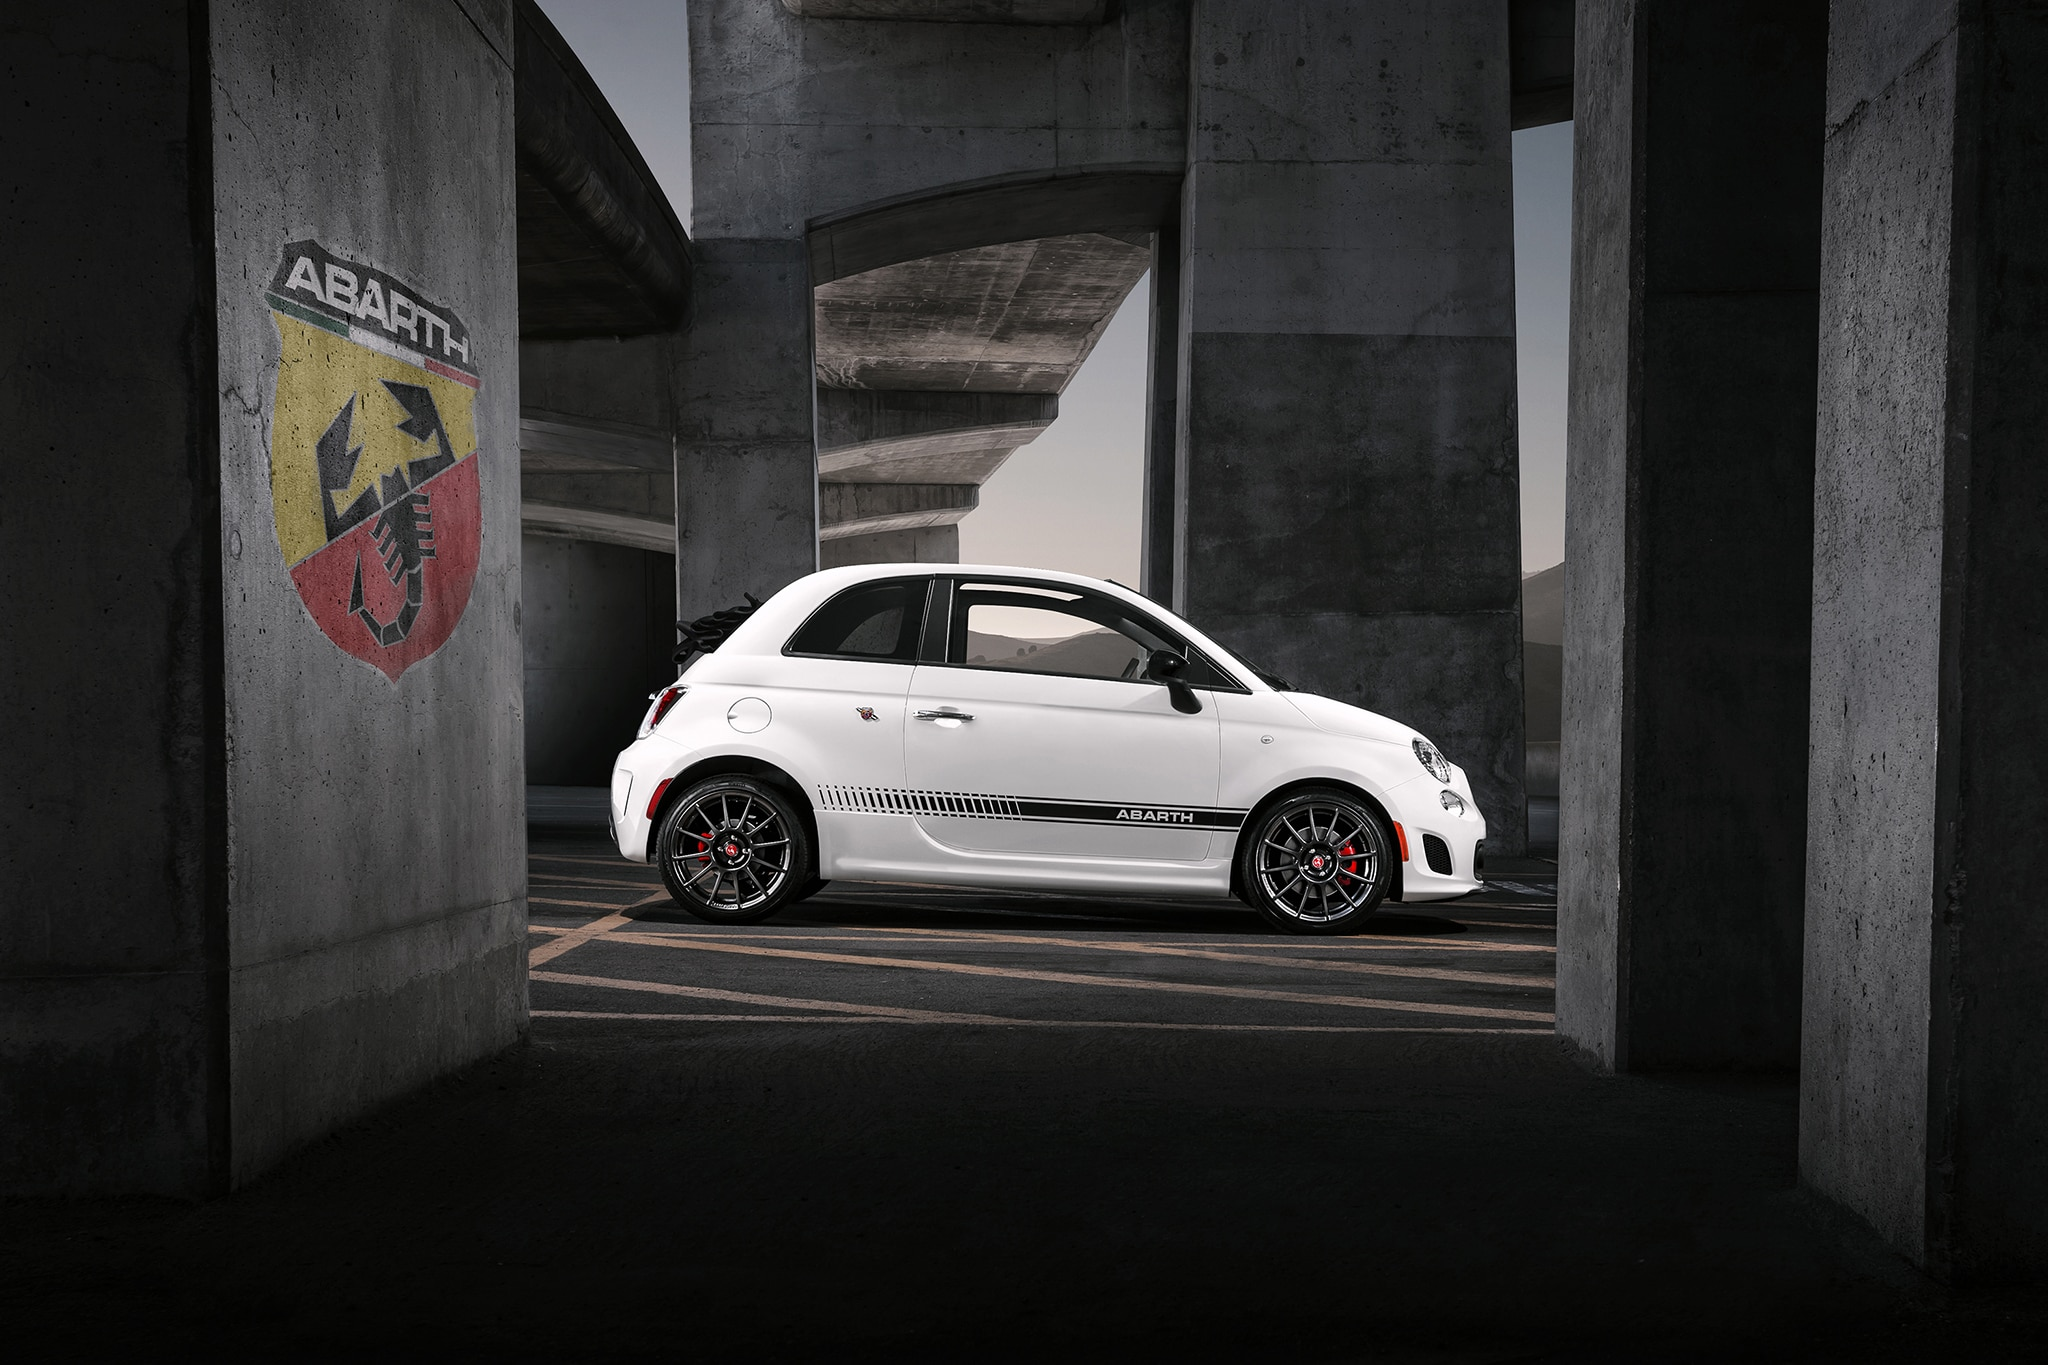 2019 fiat 500 abarth cabriolet review: fun, but a hard sell